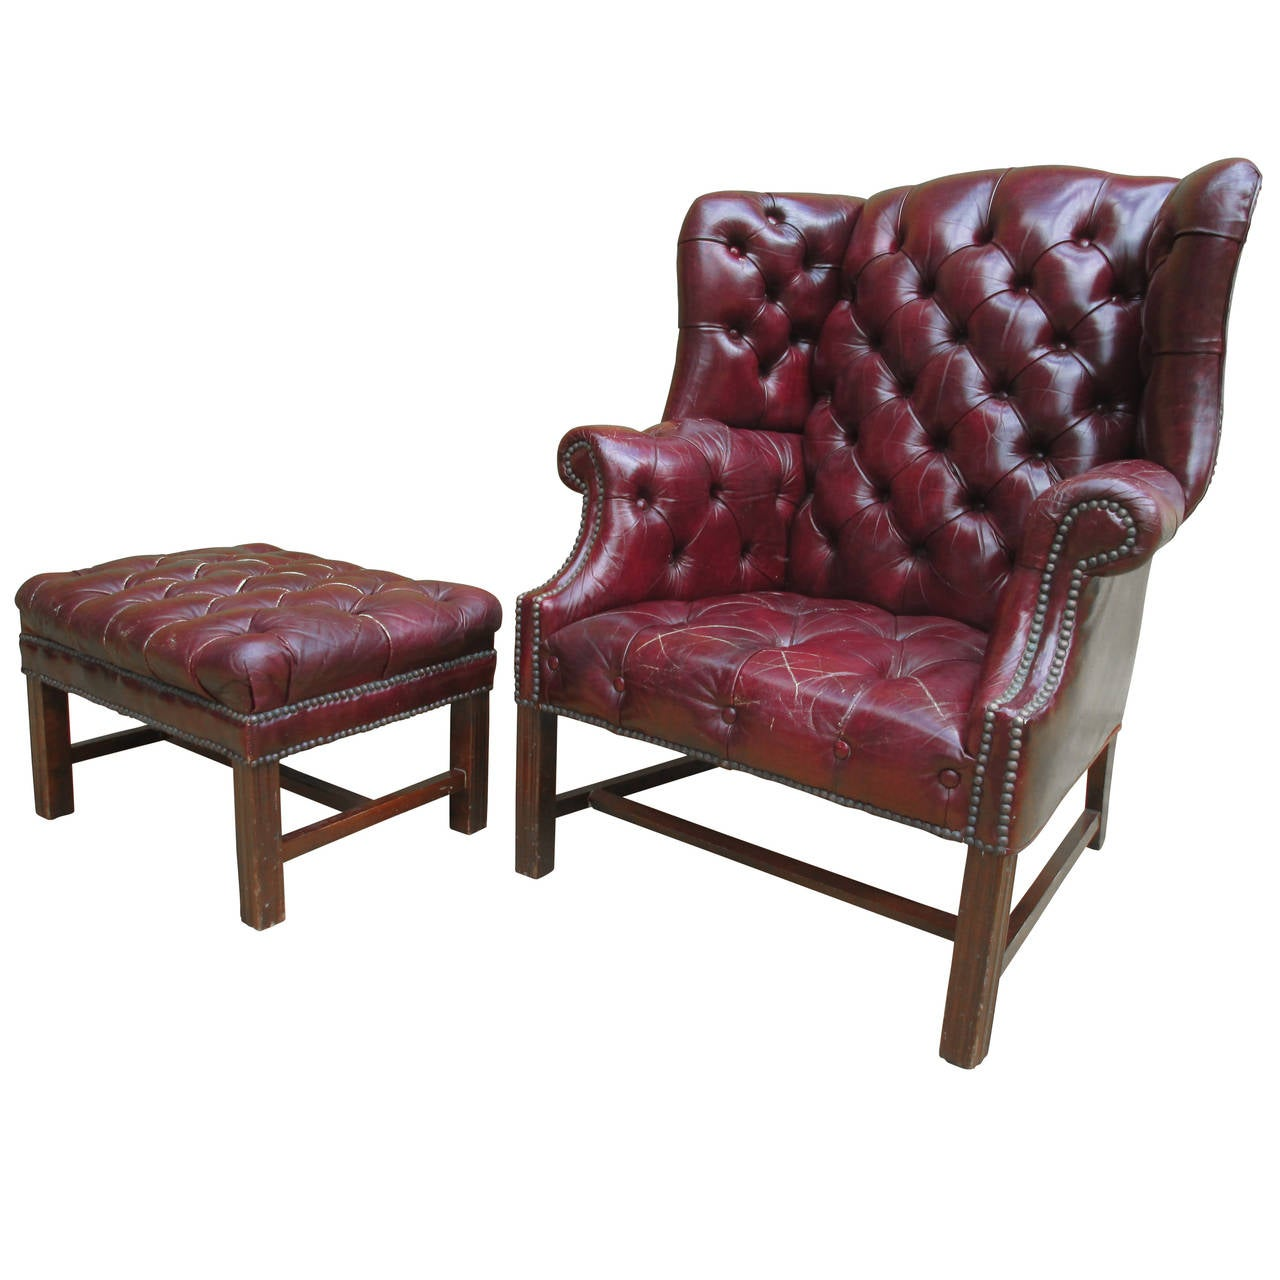 tufted chair and ottoman bedroom commode wingback at 1stdibs